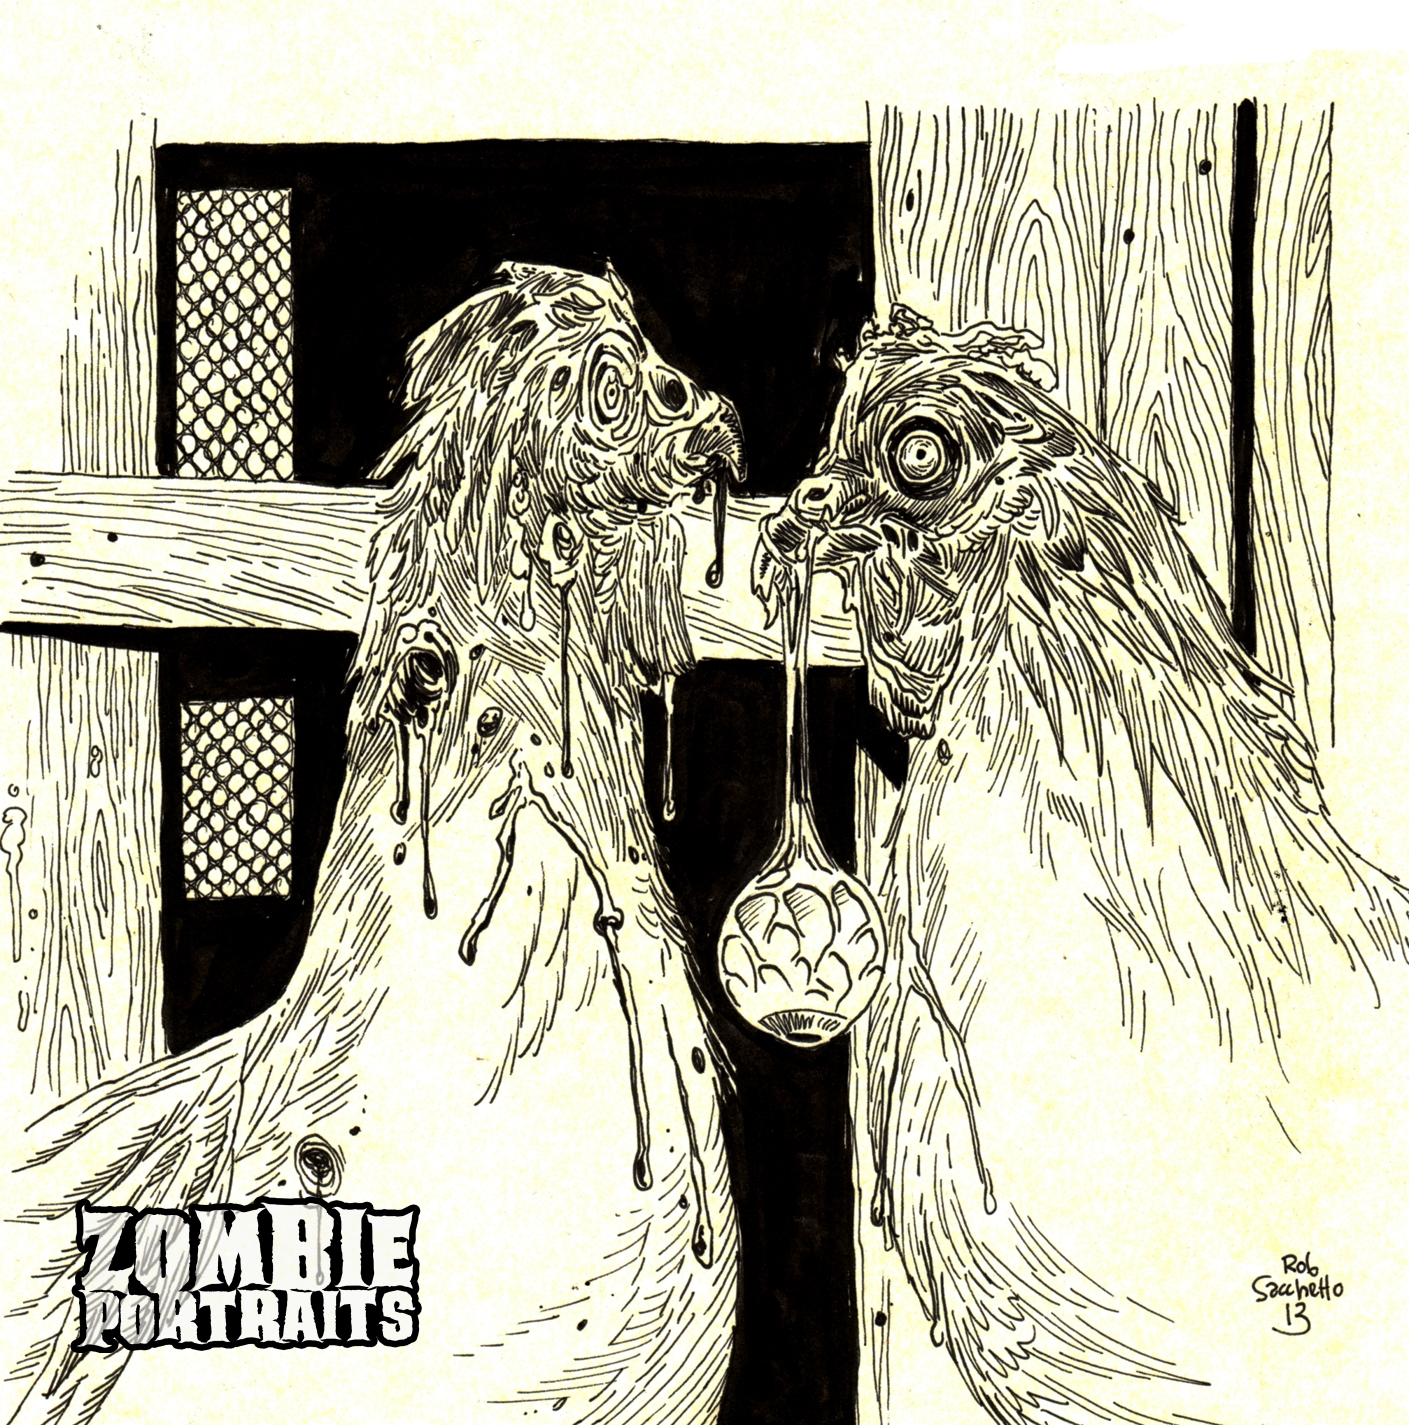 Zombie Chickens Behaving Badly - Zombie Art by Rob Sacchetto